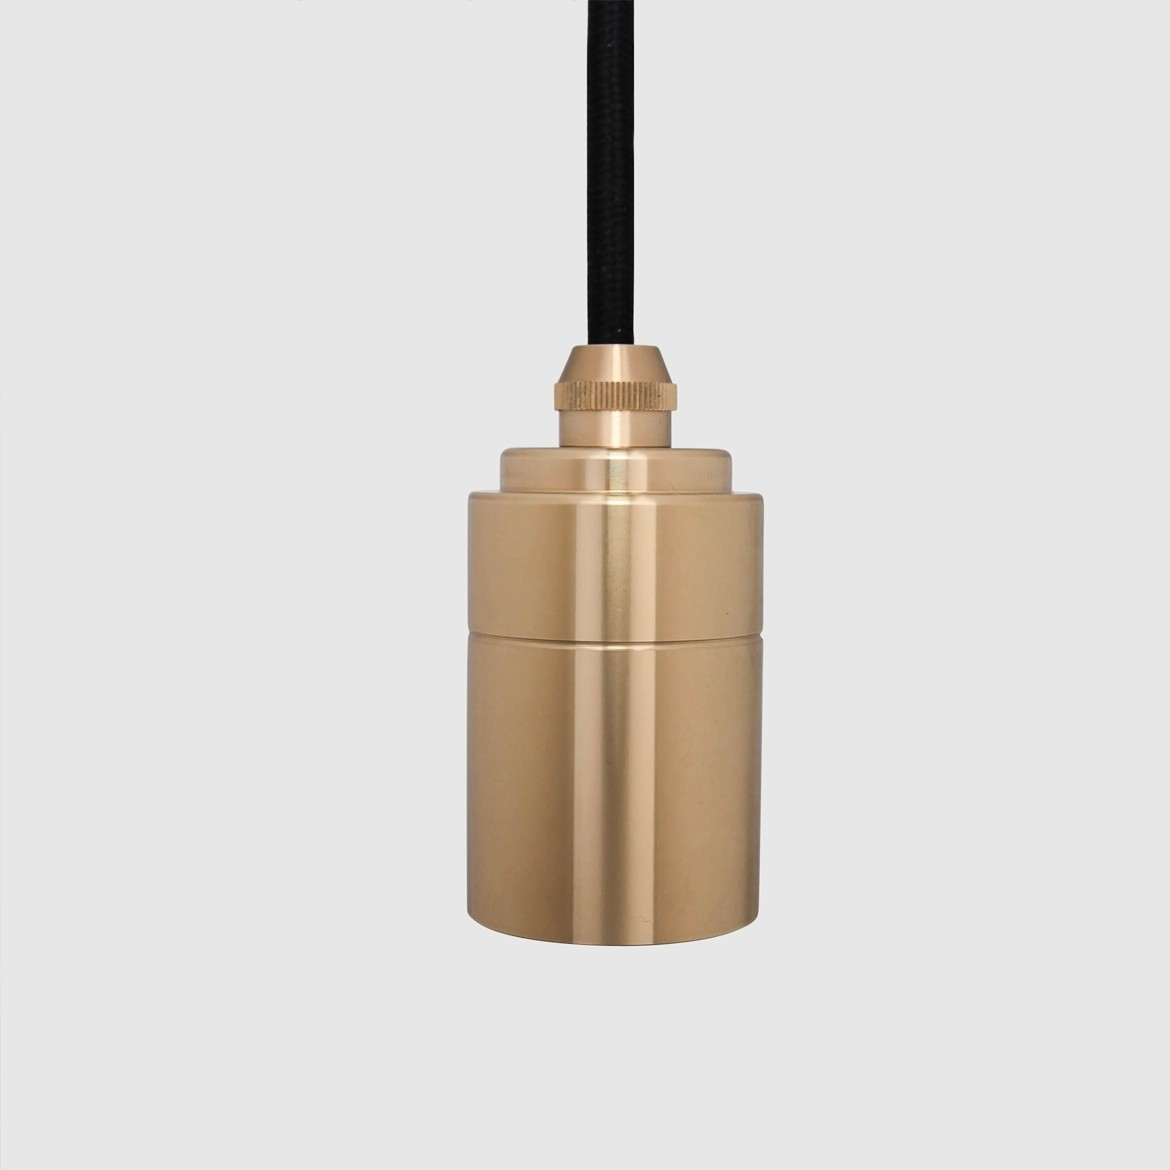 Brass pendant by Tala